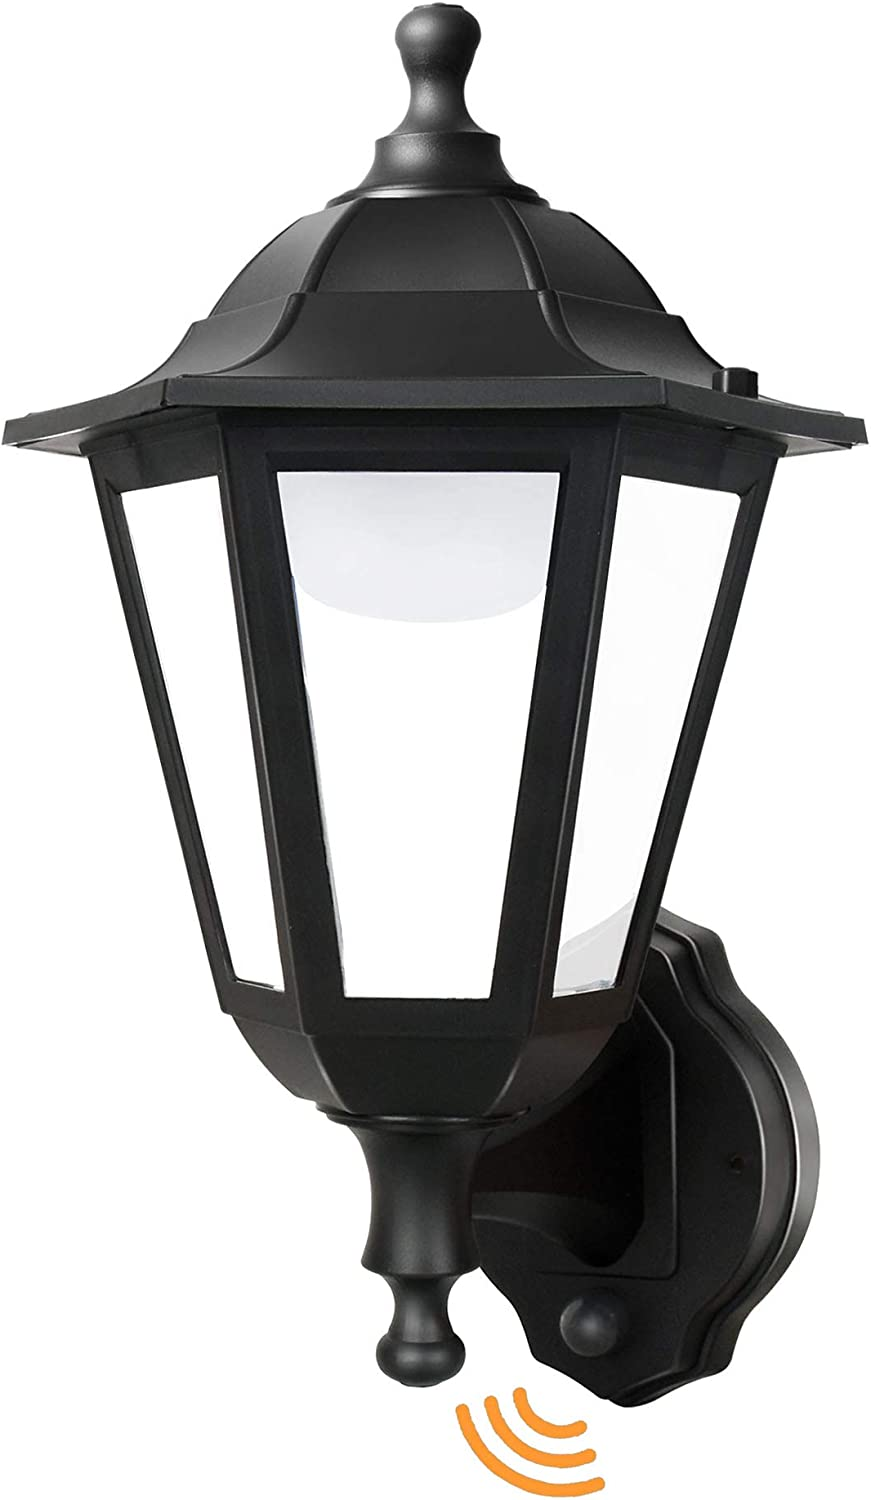 Amazon Com Fudesy Traditional Style Led Outdoor Wall Lantern With Motion Sensor Black Polypropylene Plastic Porch Lamp With Clear Acrylic Lenses Waterproof Porch Light Fixtures P616 Pir Home Improvement